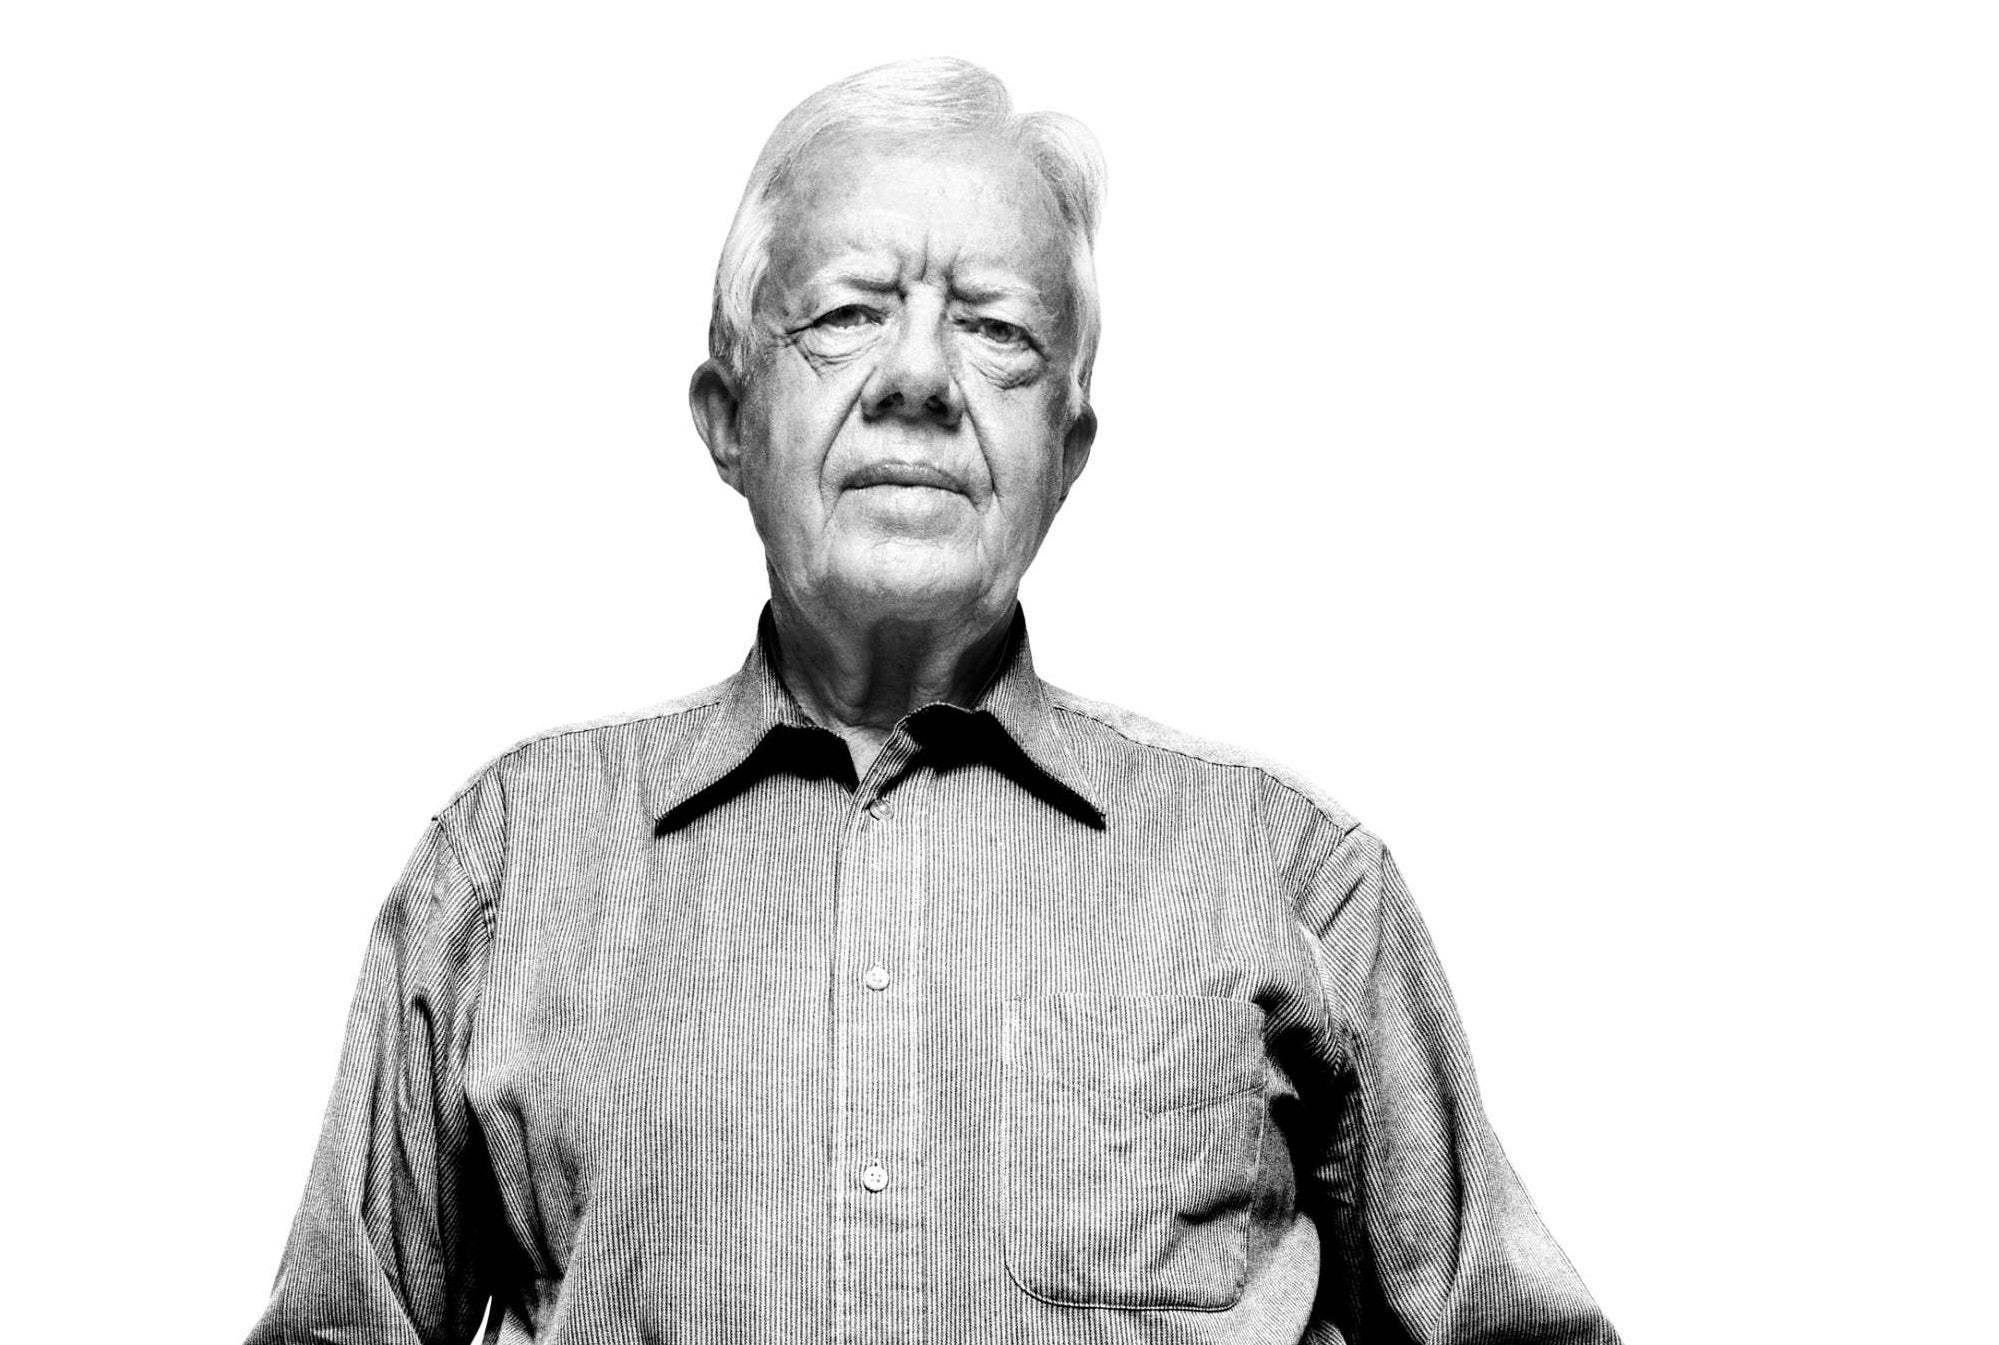 Jimmy Carter Wants To Rid The Planet Of Diseases